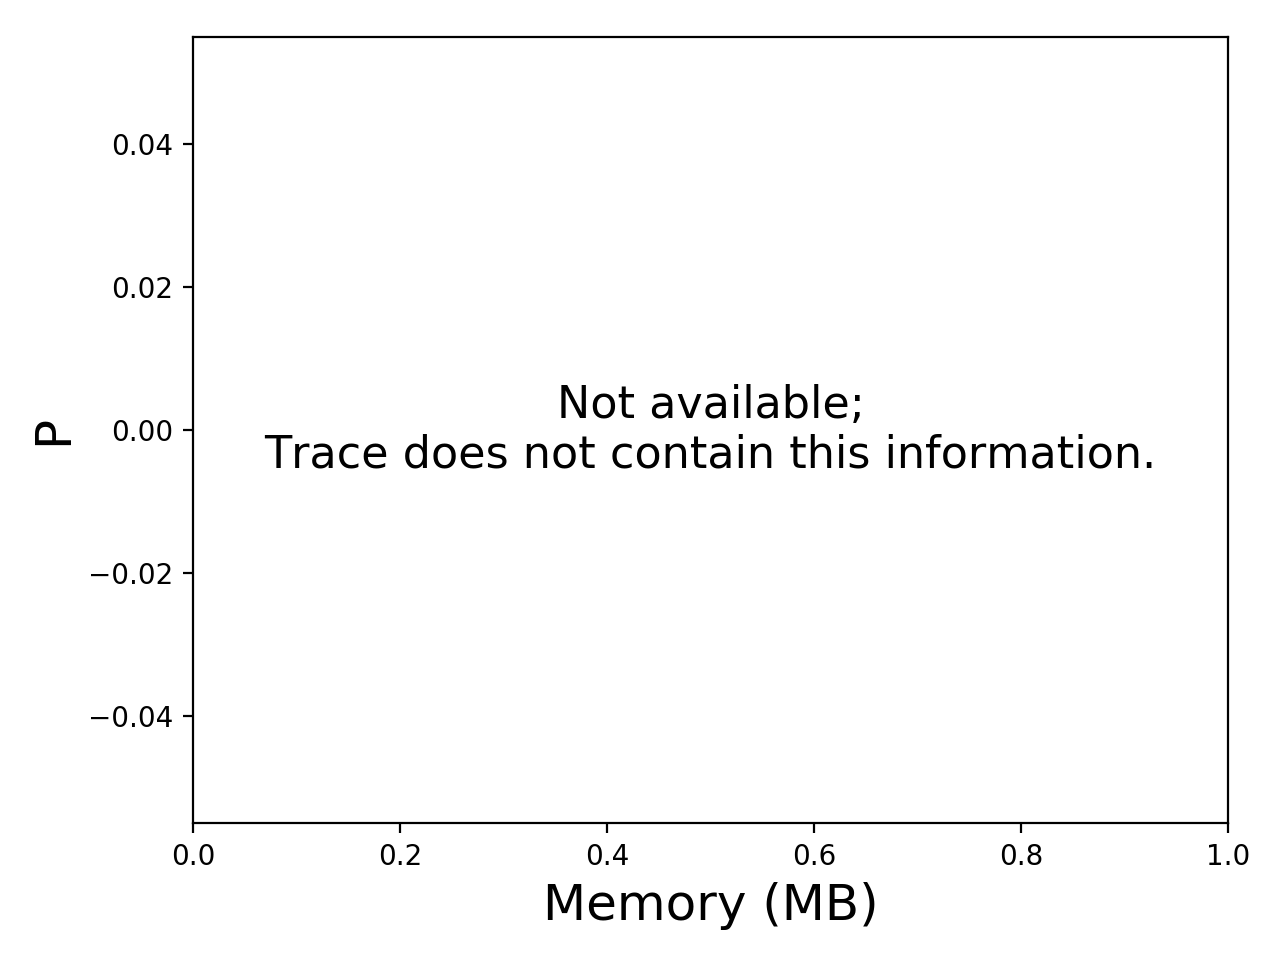 Task memory consumption graph for the Pegasus_P5 trace.